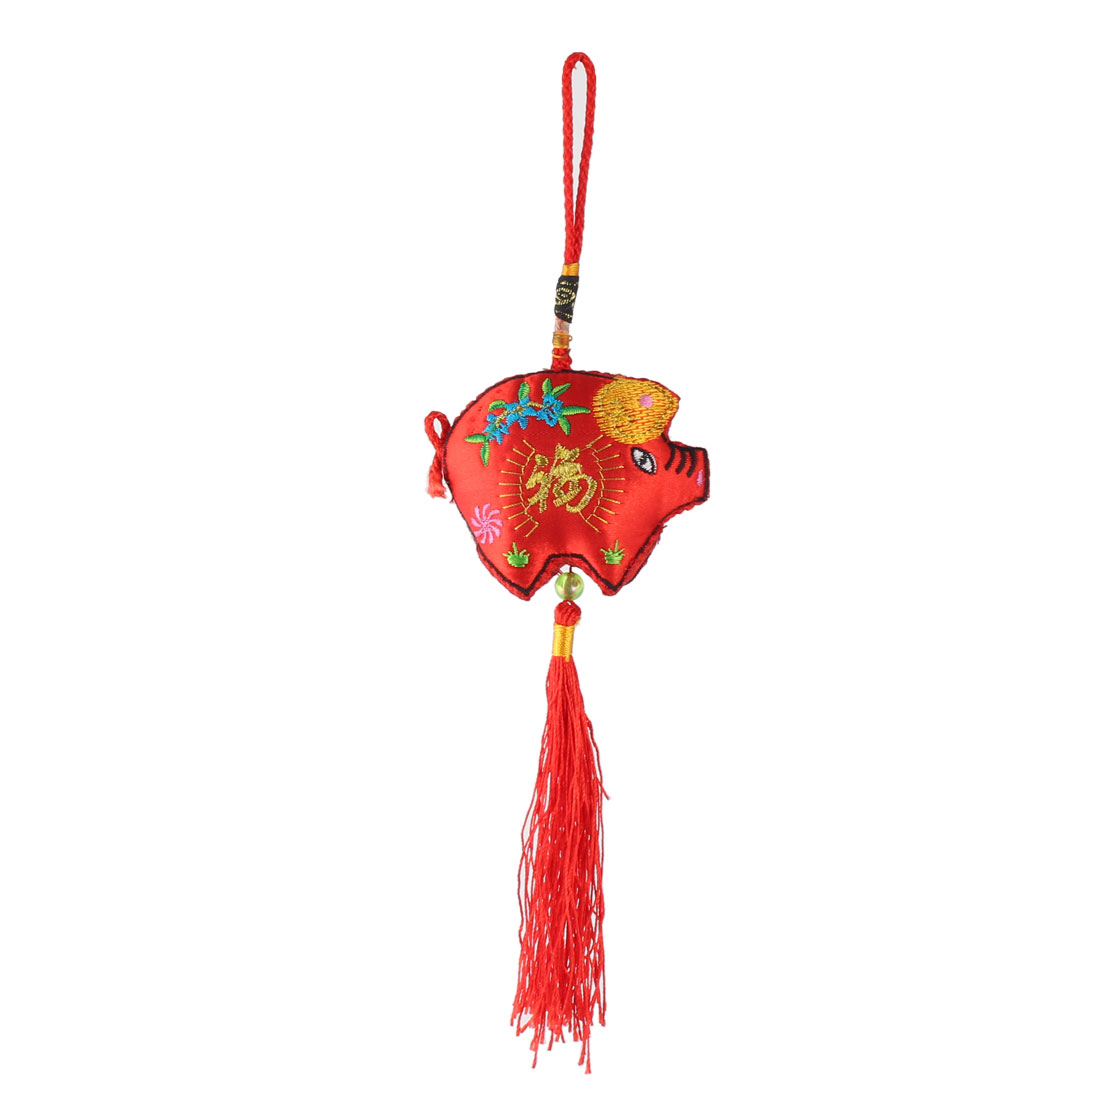 Cotton Rope Pig Shape Handmade Woven Hanging Tassel Chinese Knot Red